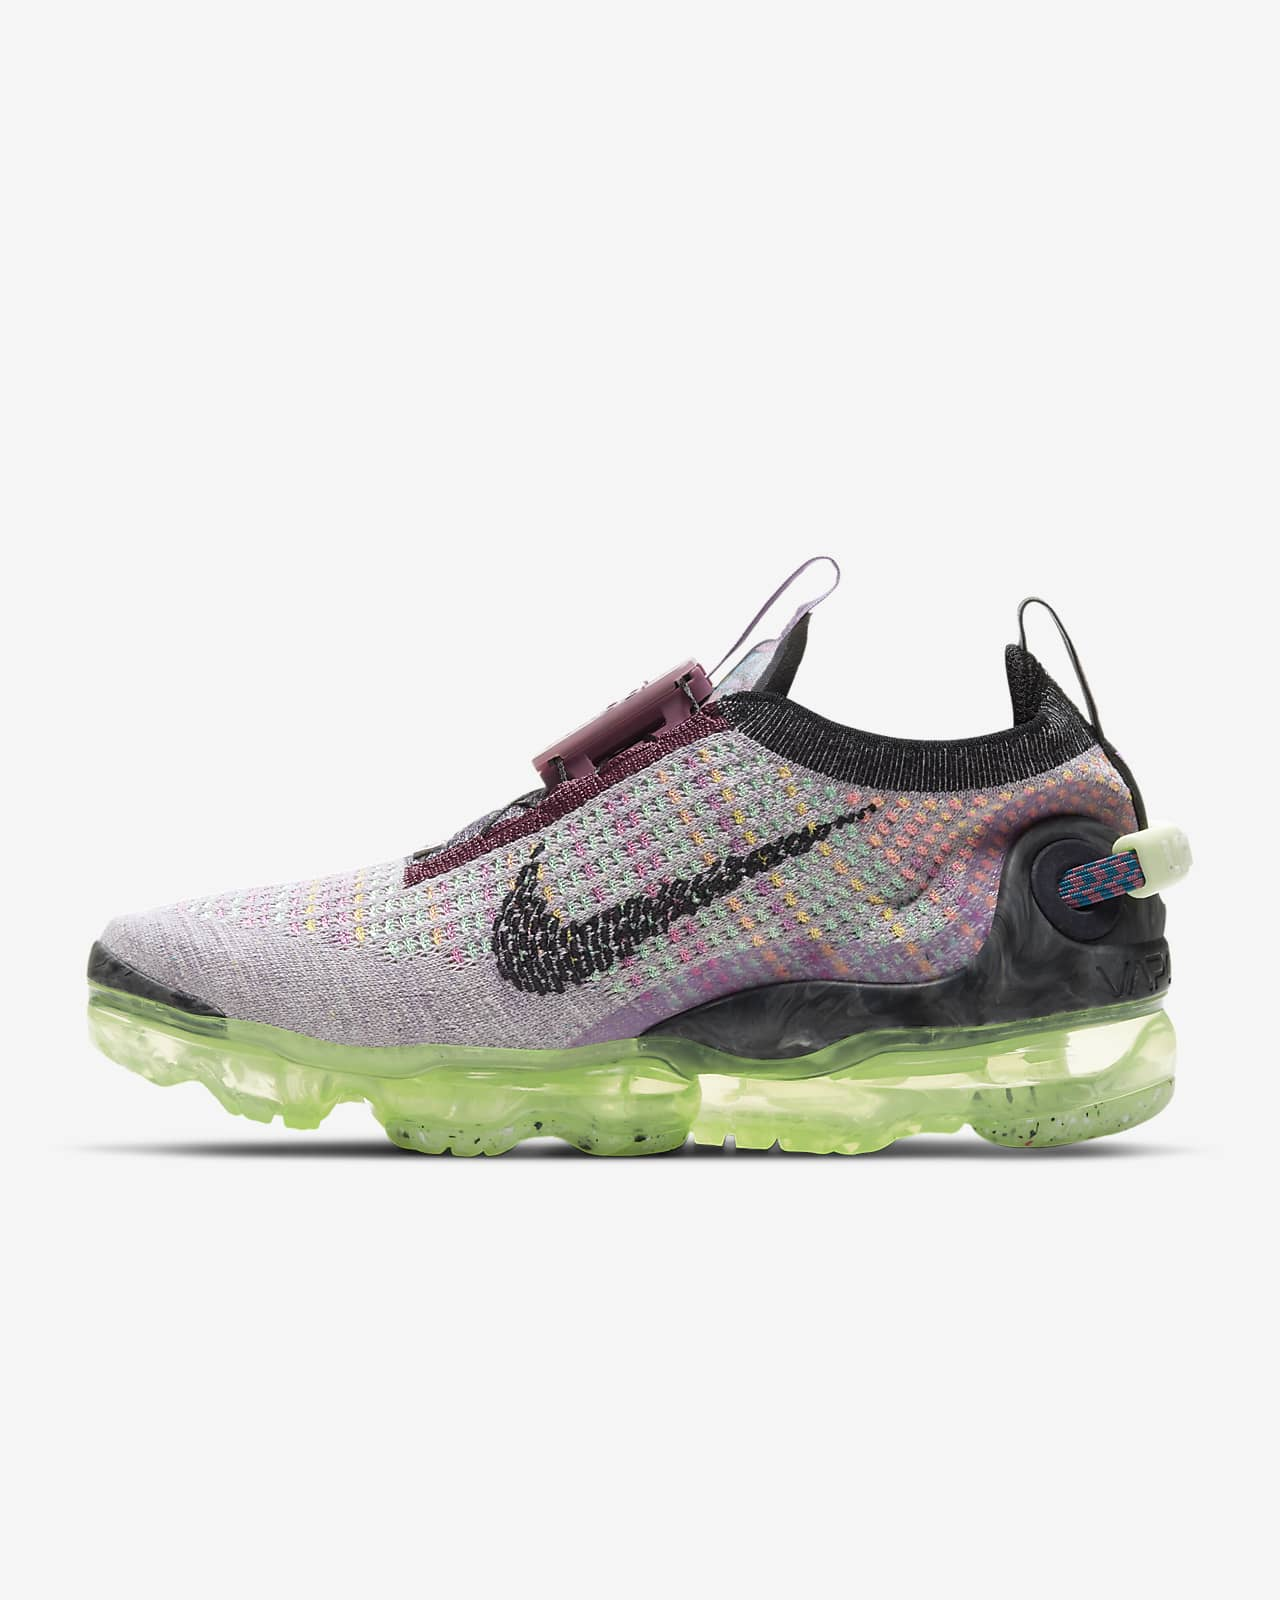 Nike Air VaporMax 2020 Flyknit Women's Shoe